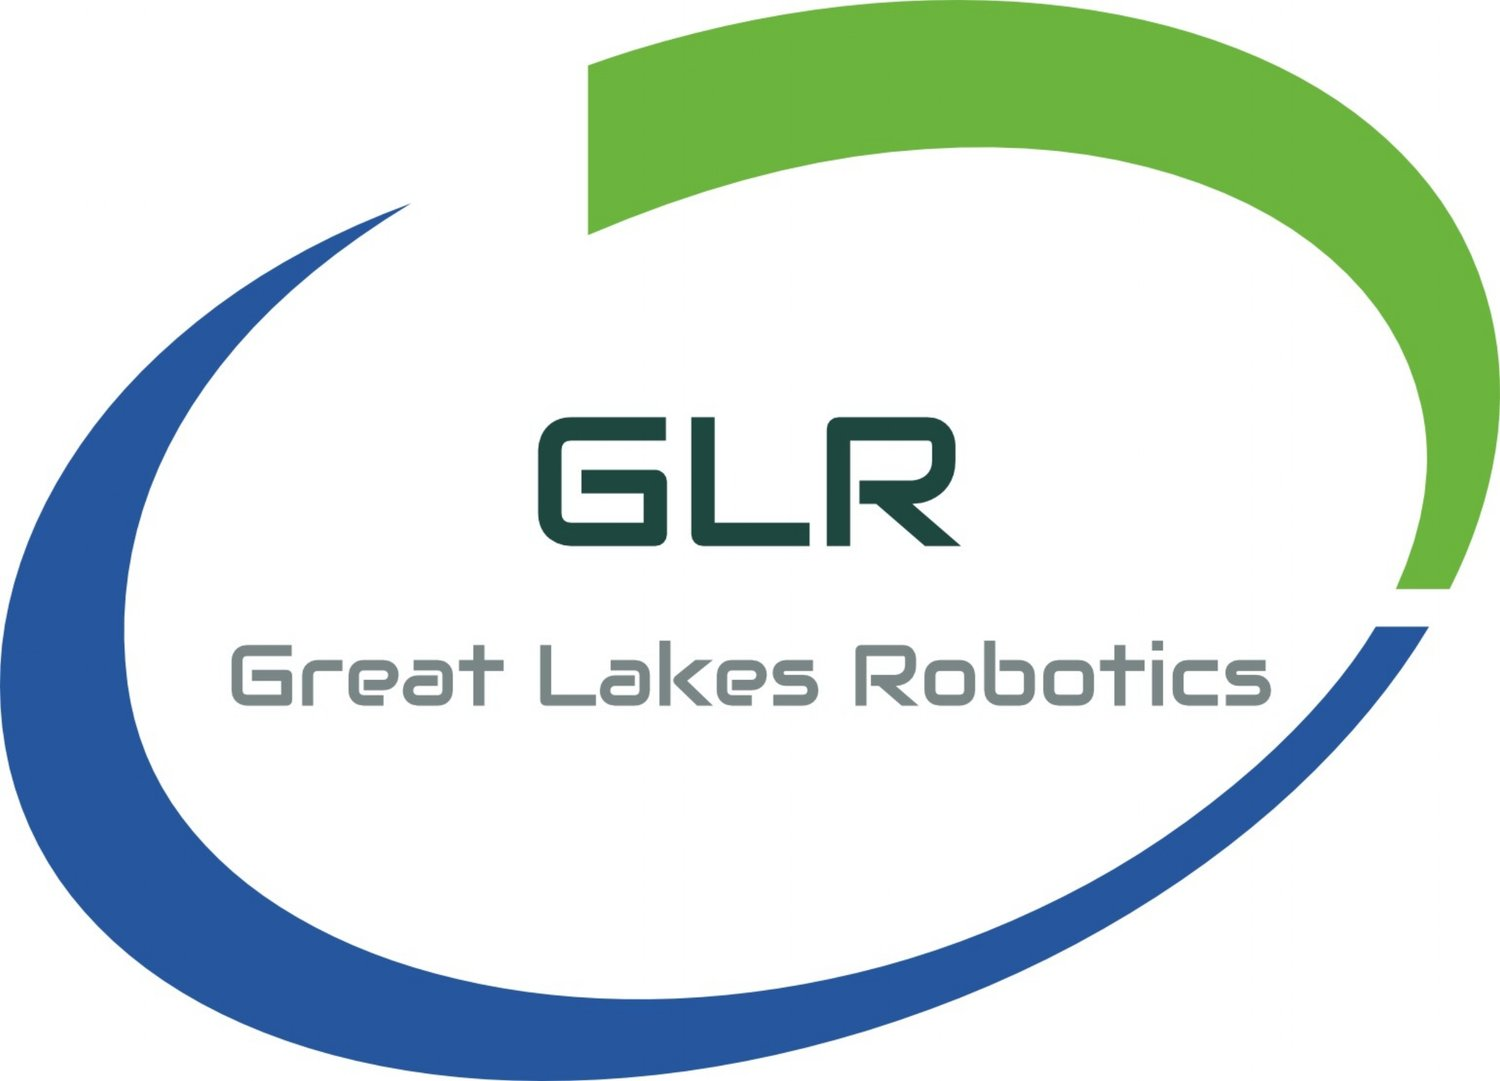 Great Lakes Robotics (GLR) | Industrial Automation Specialists